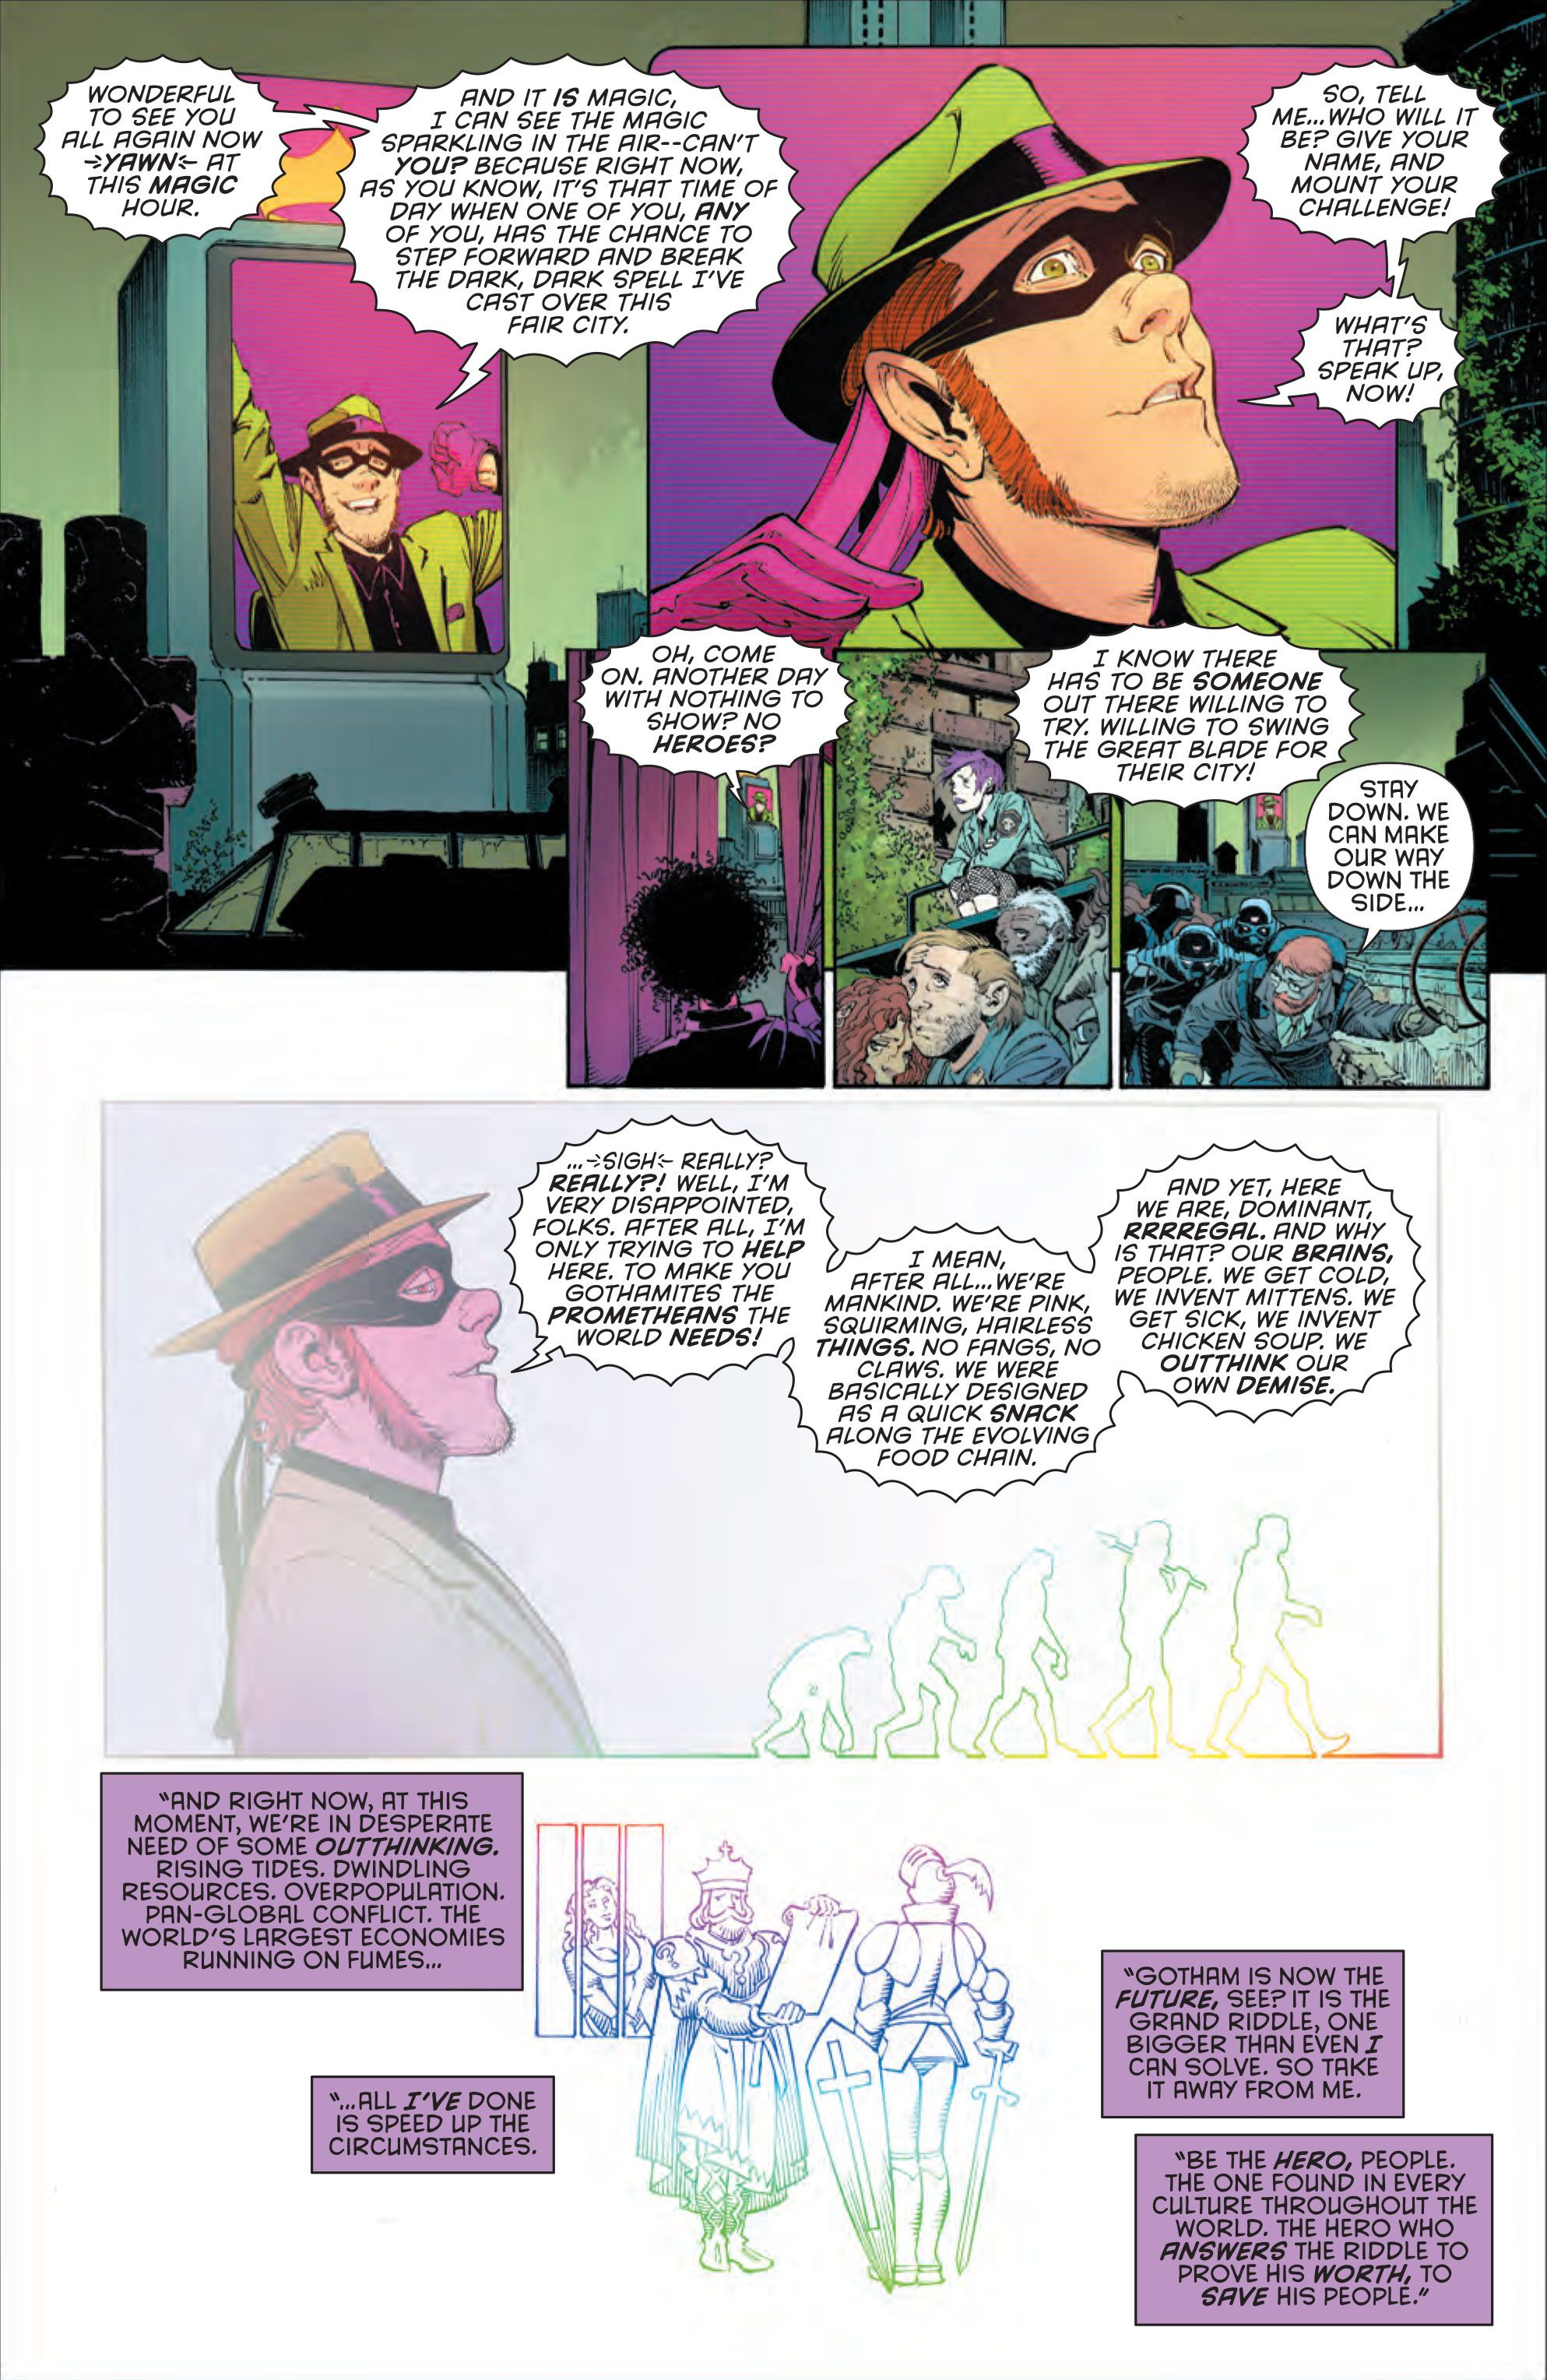 The Riddler makes his daily challenge to Gotham on Page 16 of Batman #30. The images of the evolution of humans and a medieval scene are nods to Edward Nygma's thinking and to research that Scott Snyder and Marguerite Bennett did into the lore of riddles.